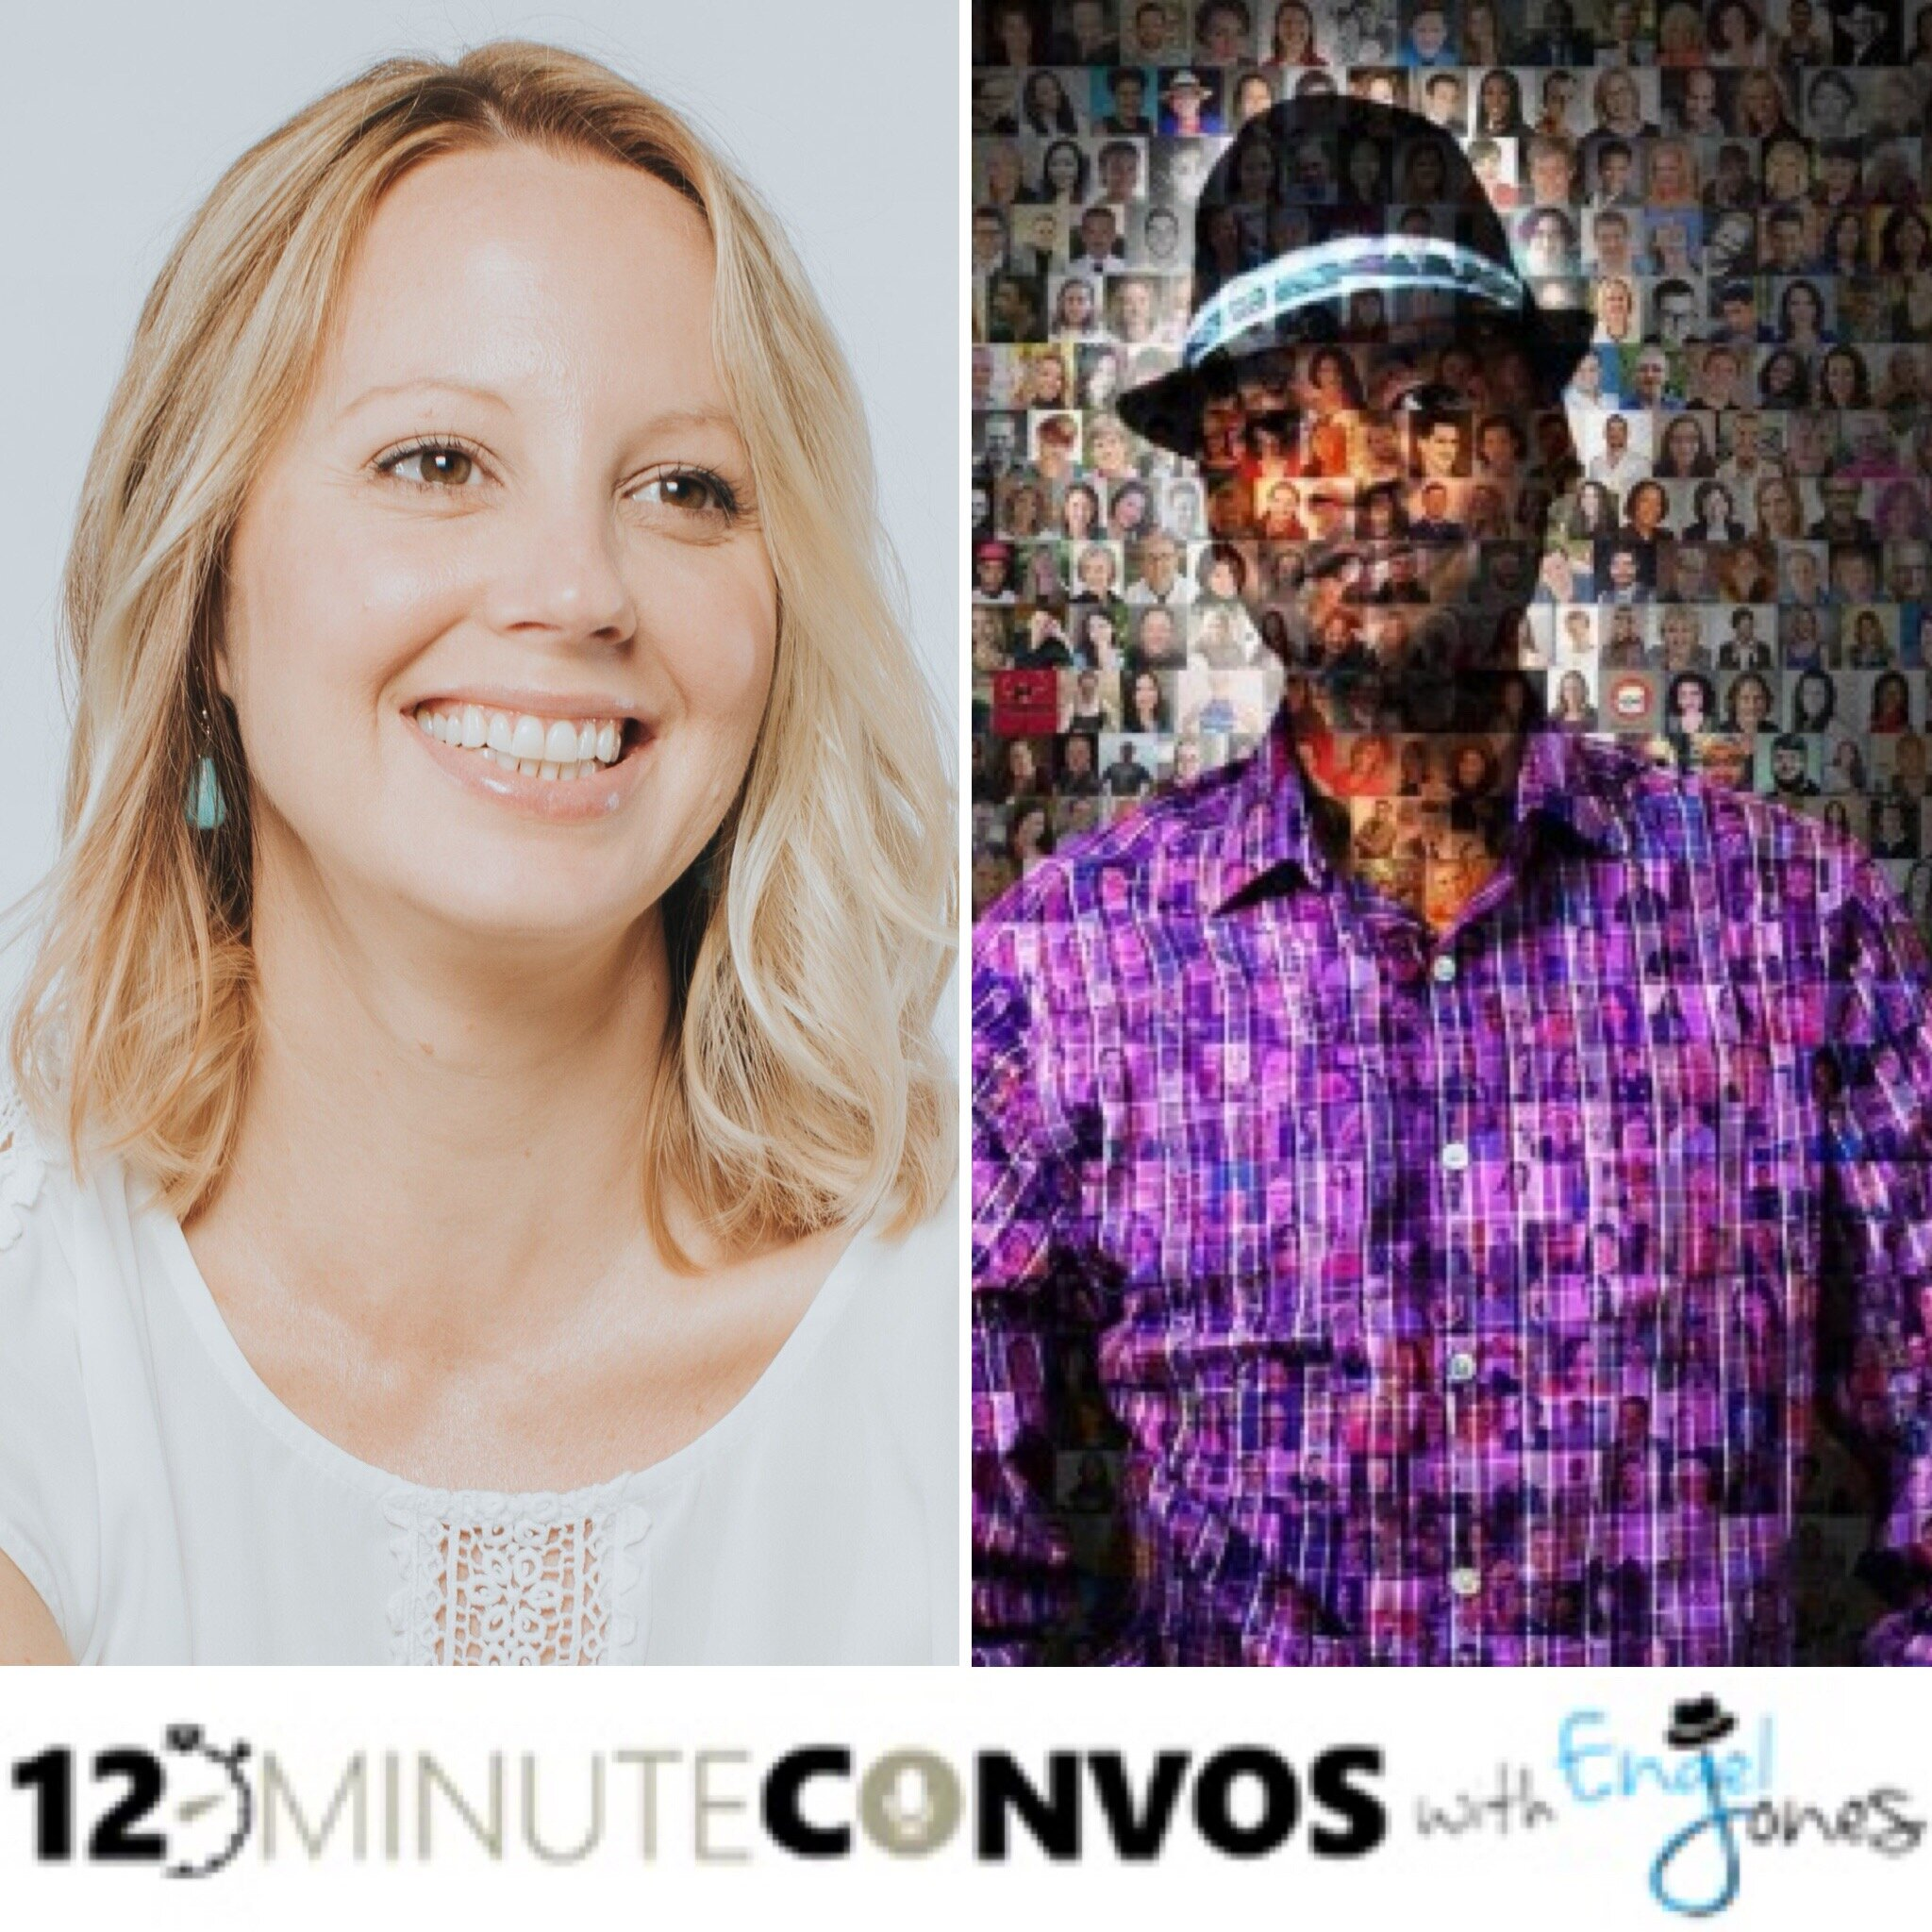 12 Minute Convos Podcast   Engel Jones knows how to host a fun, short and insightful podcast. I was lucky enough to join him and his Carribean mellowness in the Spring of 2019.